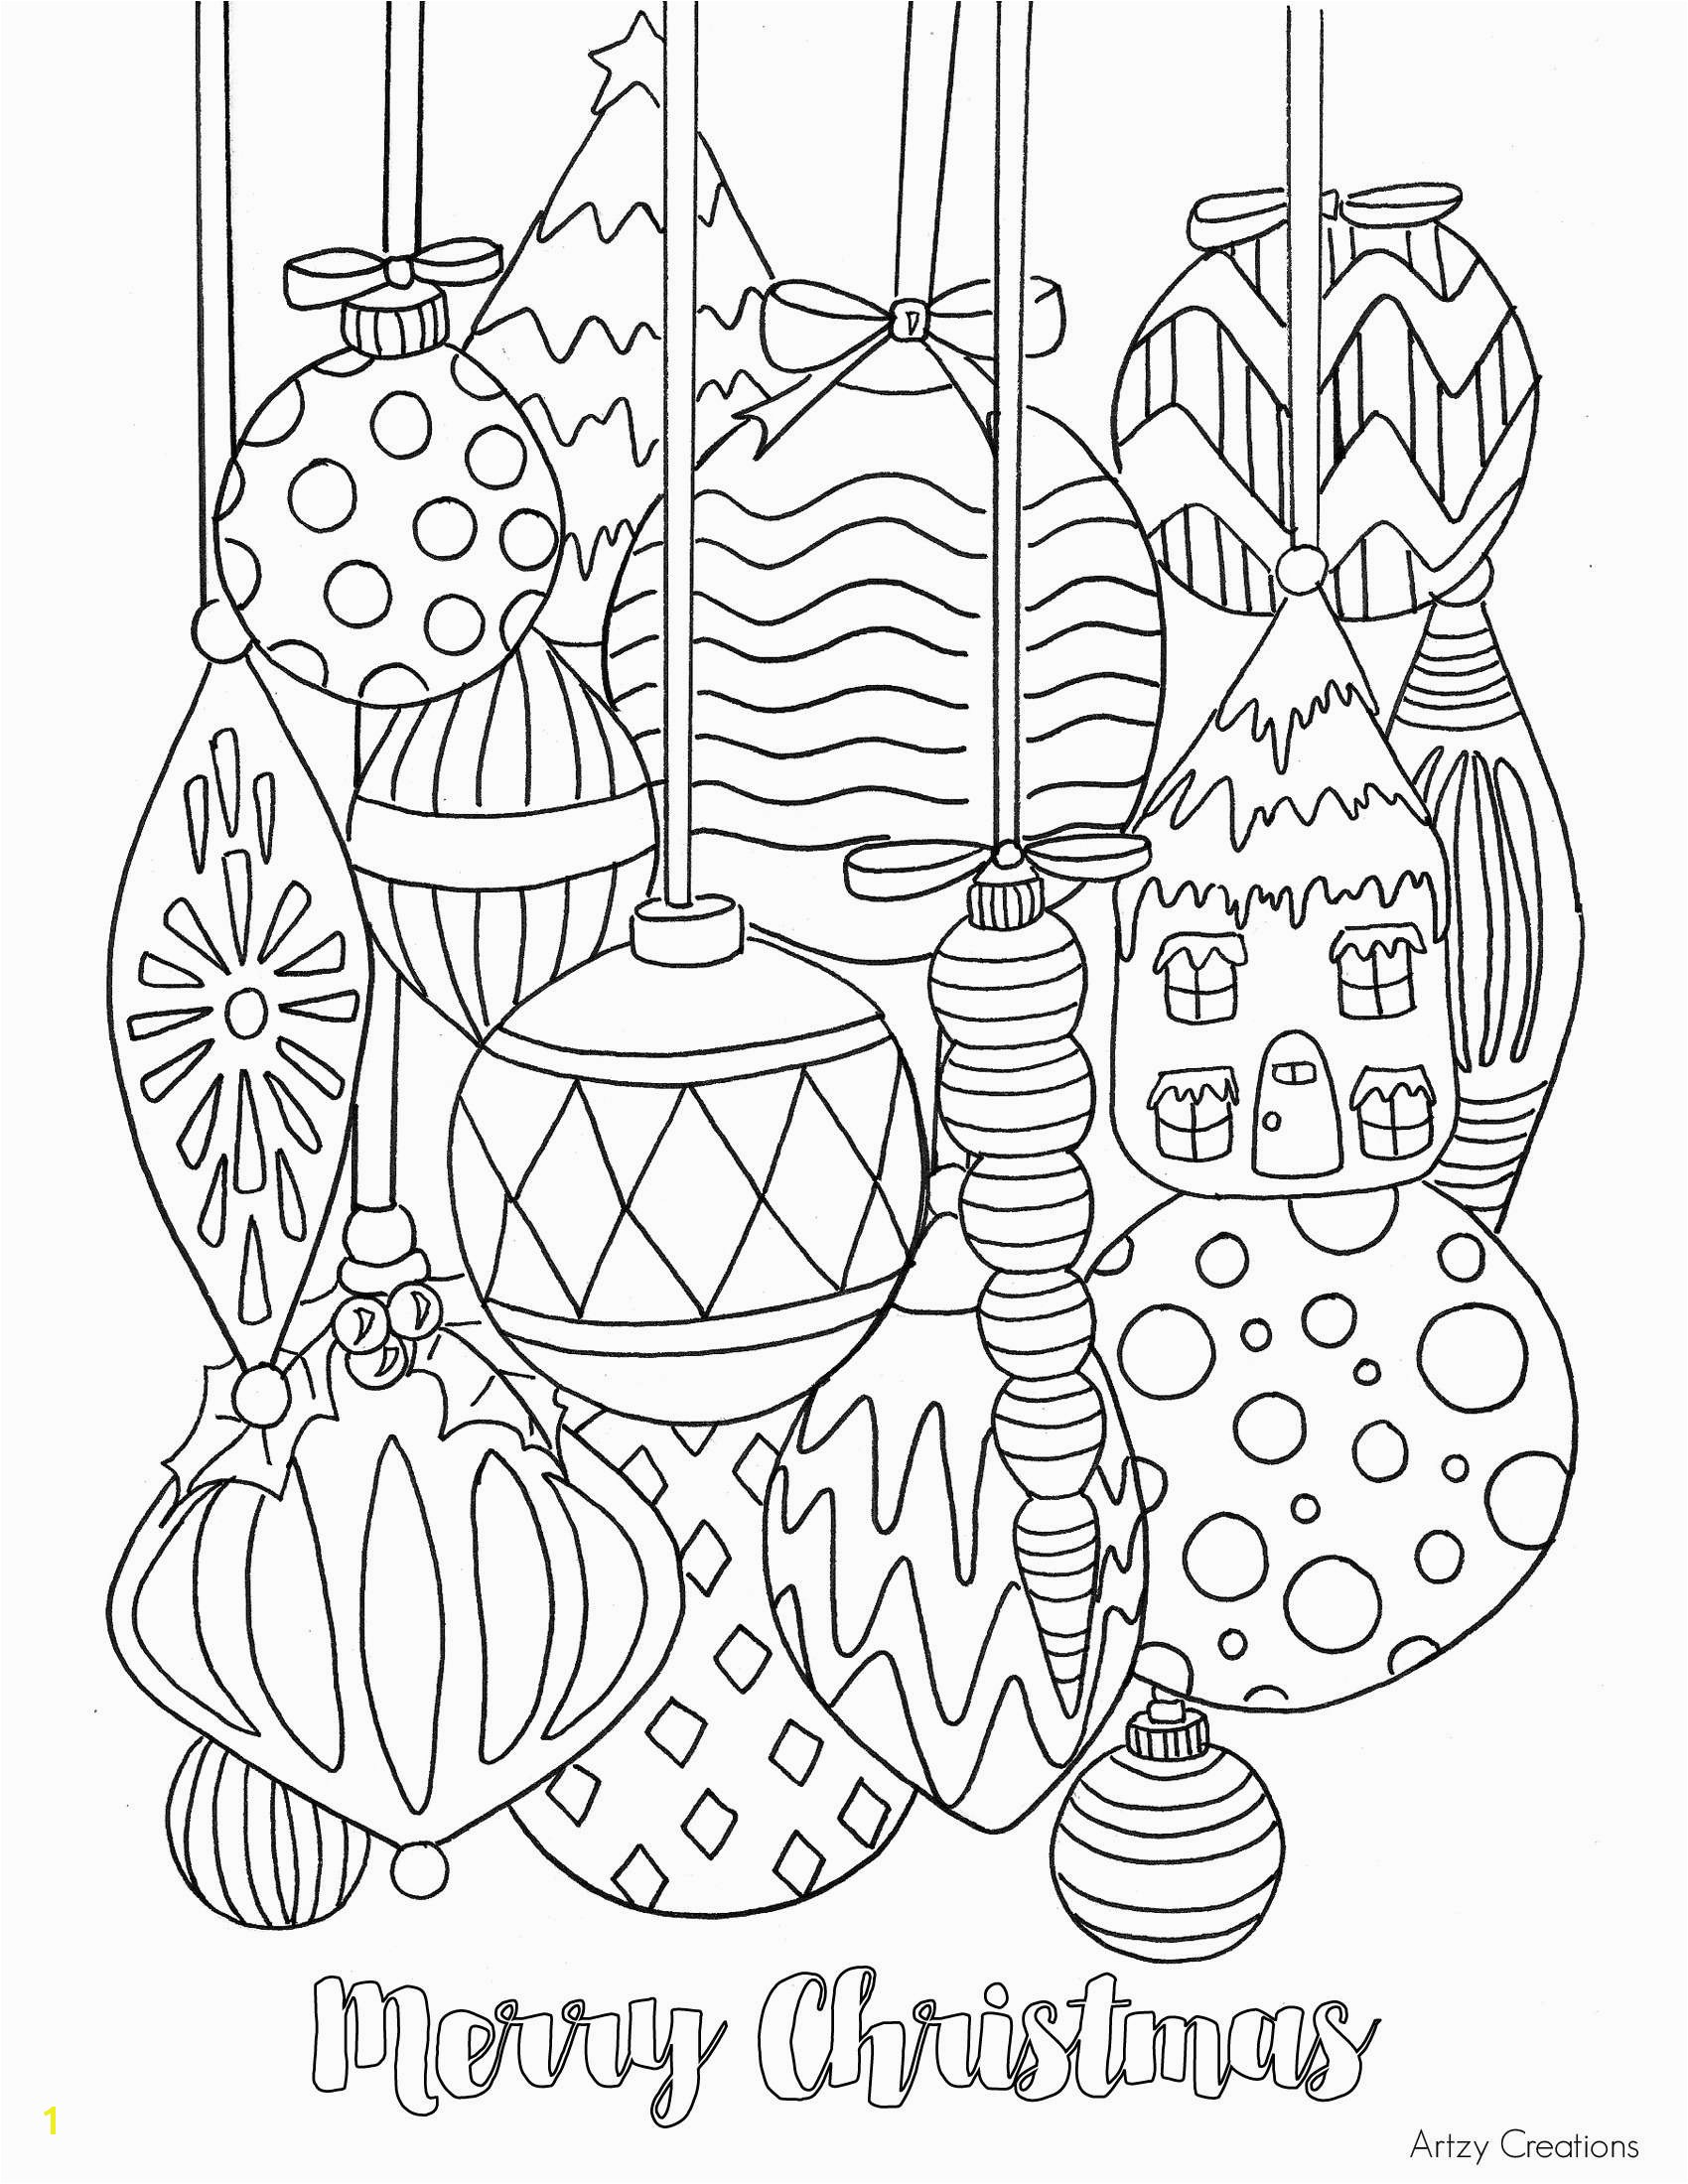 Difficult Coloring Pages Free Christmas Coloring Pages 16 Printable Coloring Pages for the